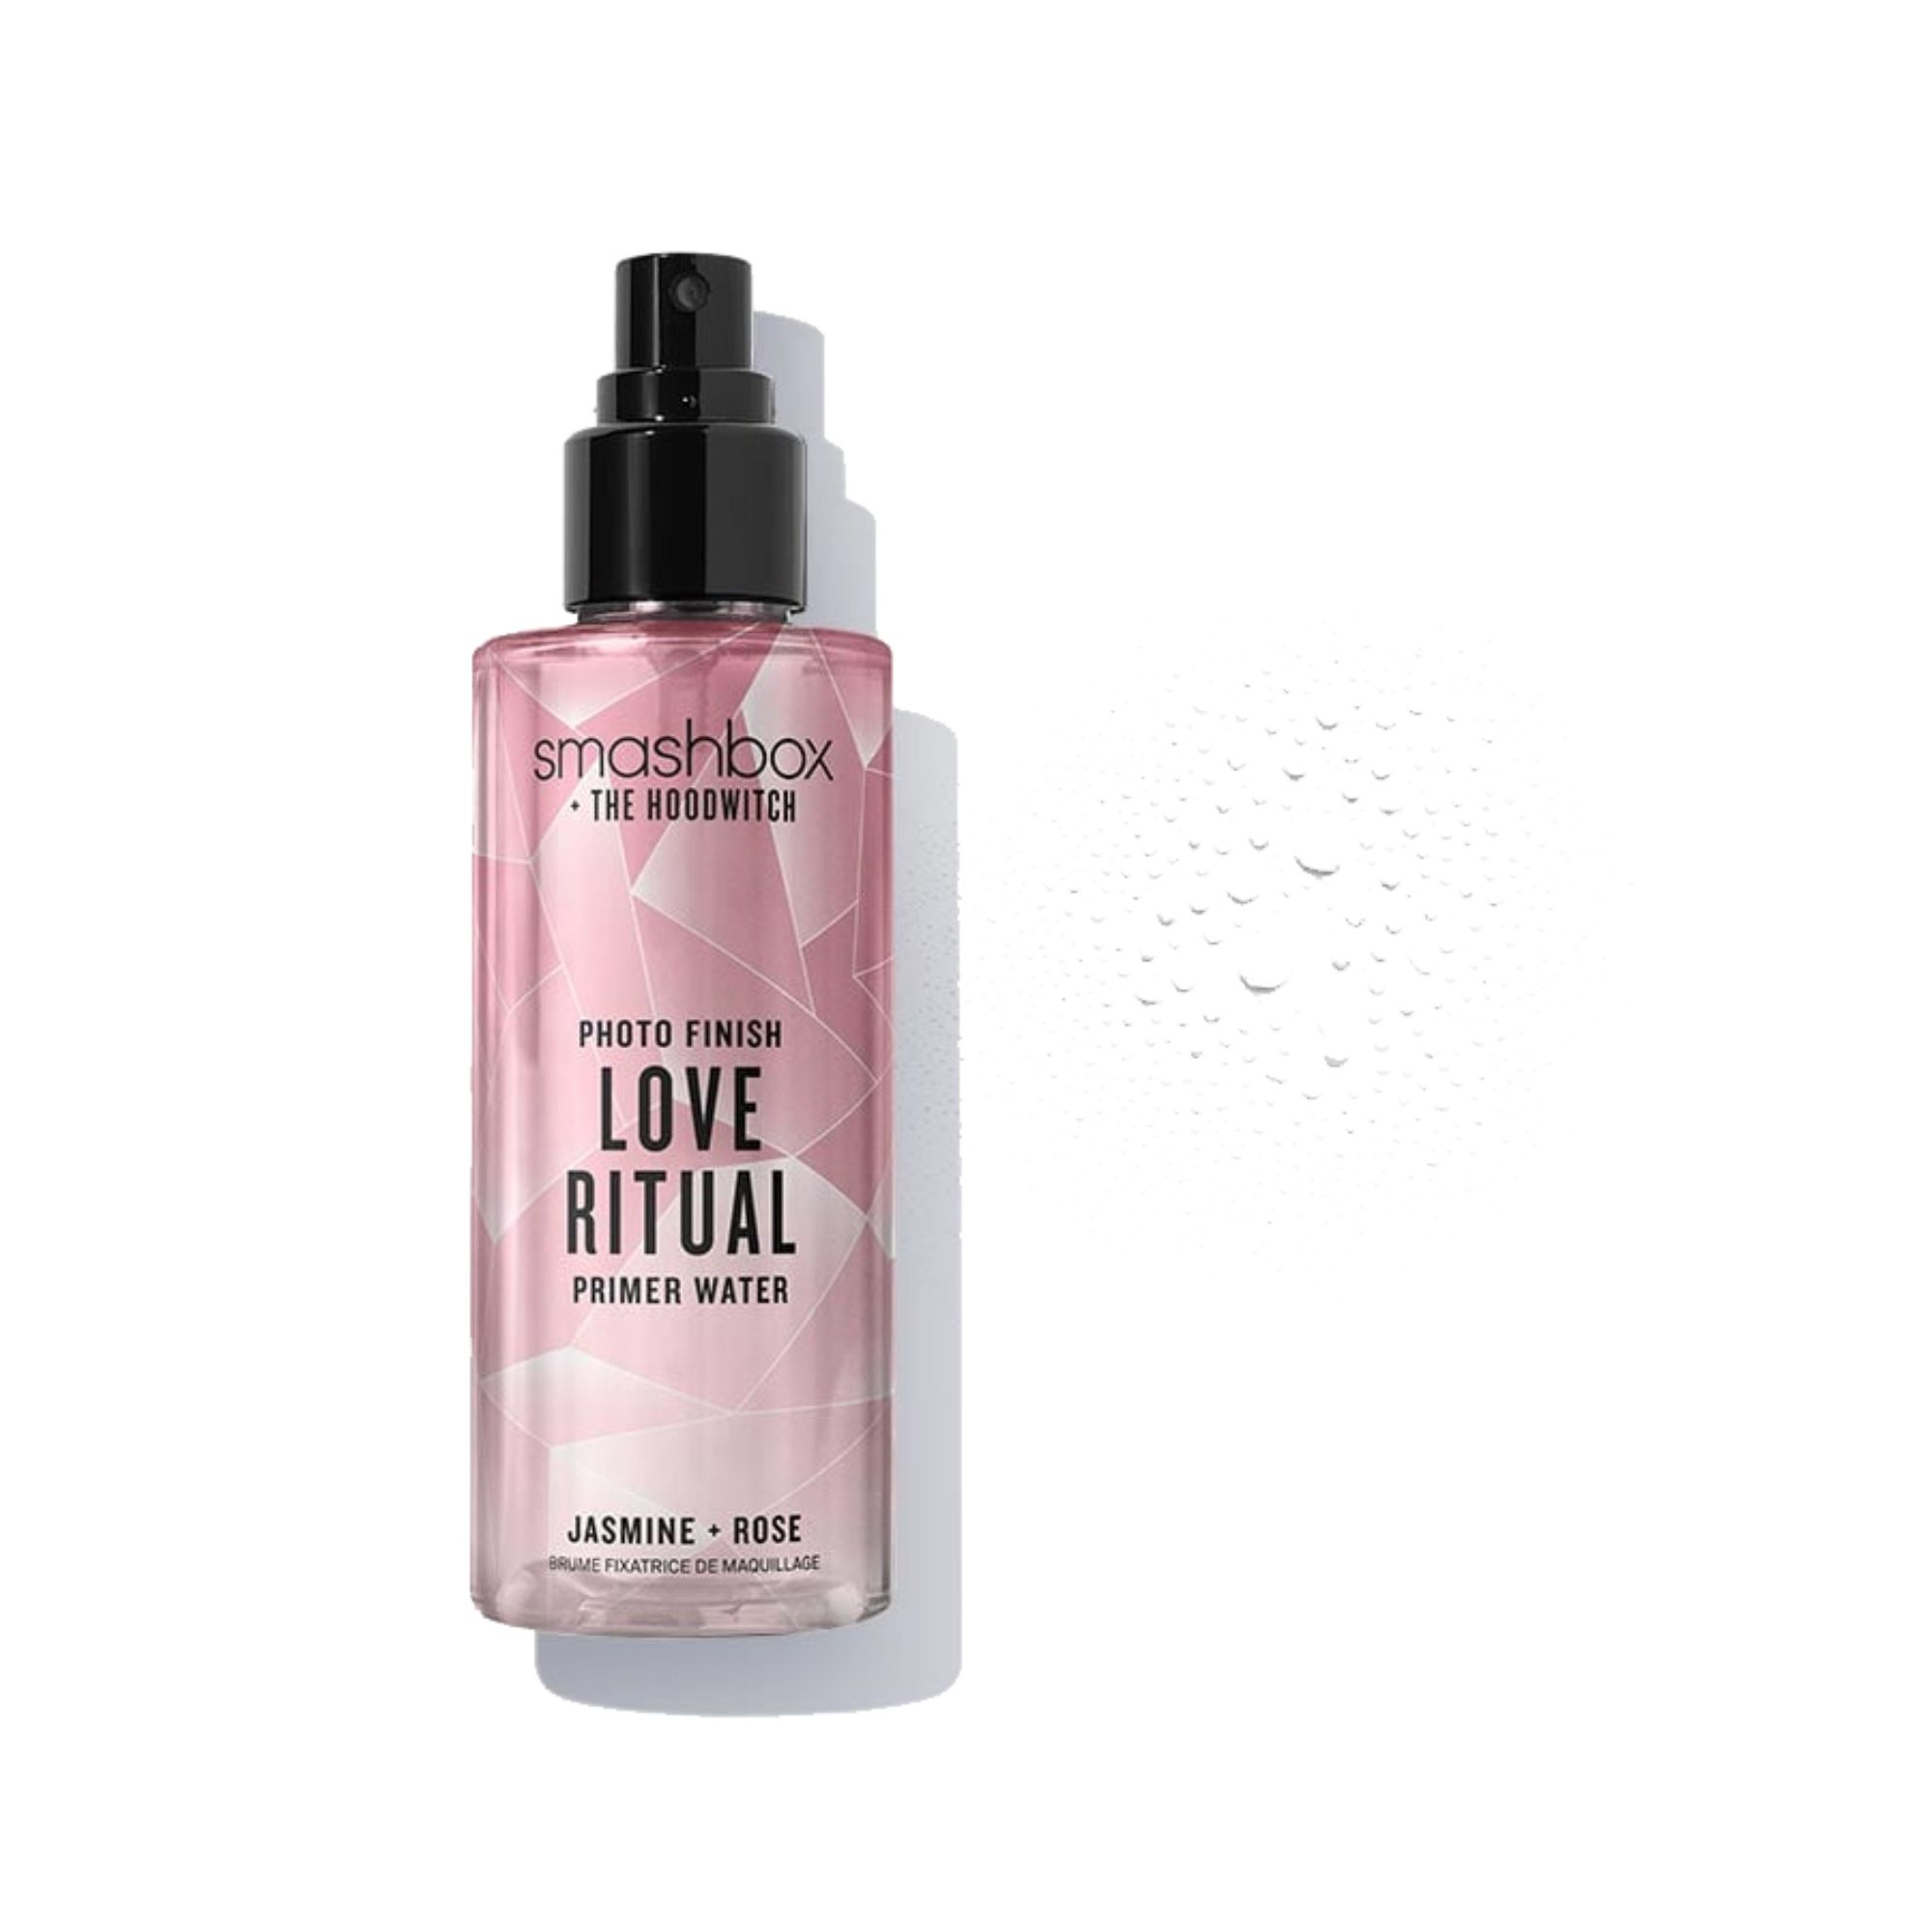 Crystalized Photo Finish Primer Water